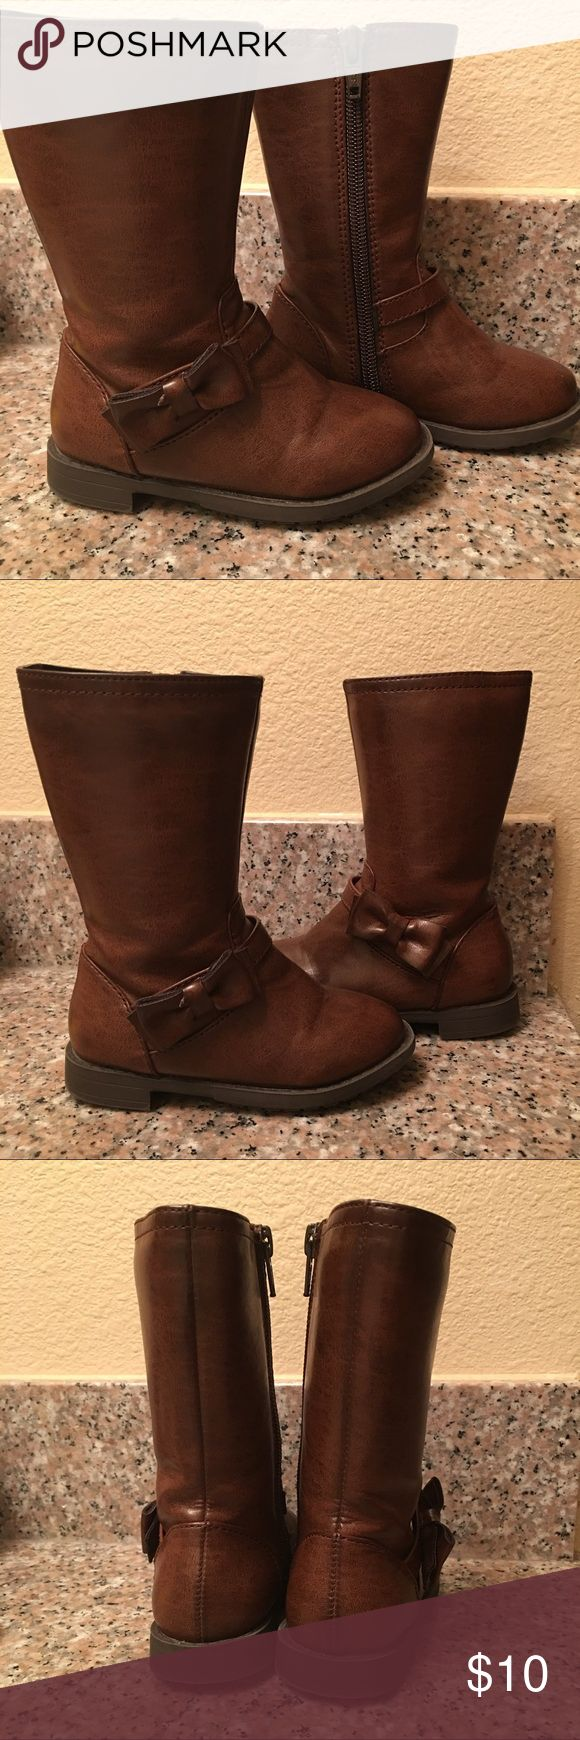 EUC BROWN BOW BOOTS Size 6 children's place brown bow boots in EUC working zipper closures. SFPF home Children's Place Shoes